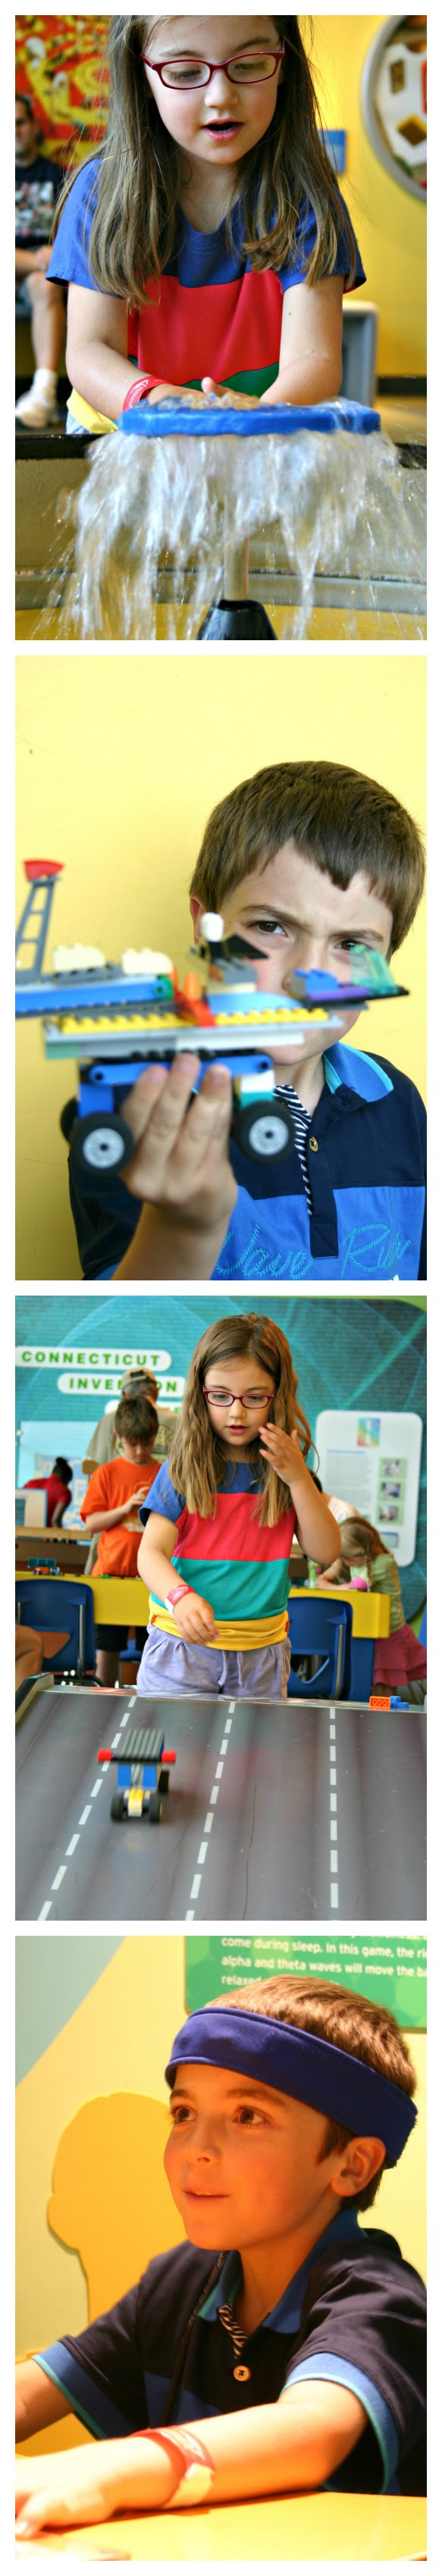 Science Centre Collage 2